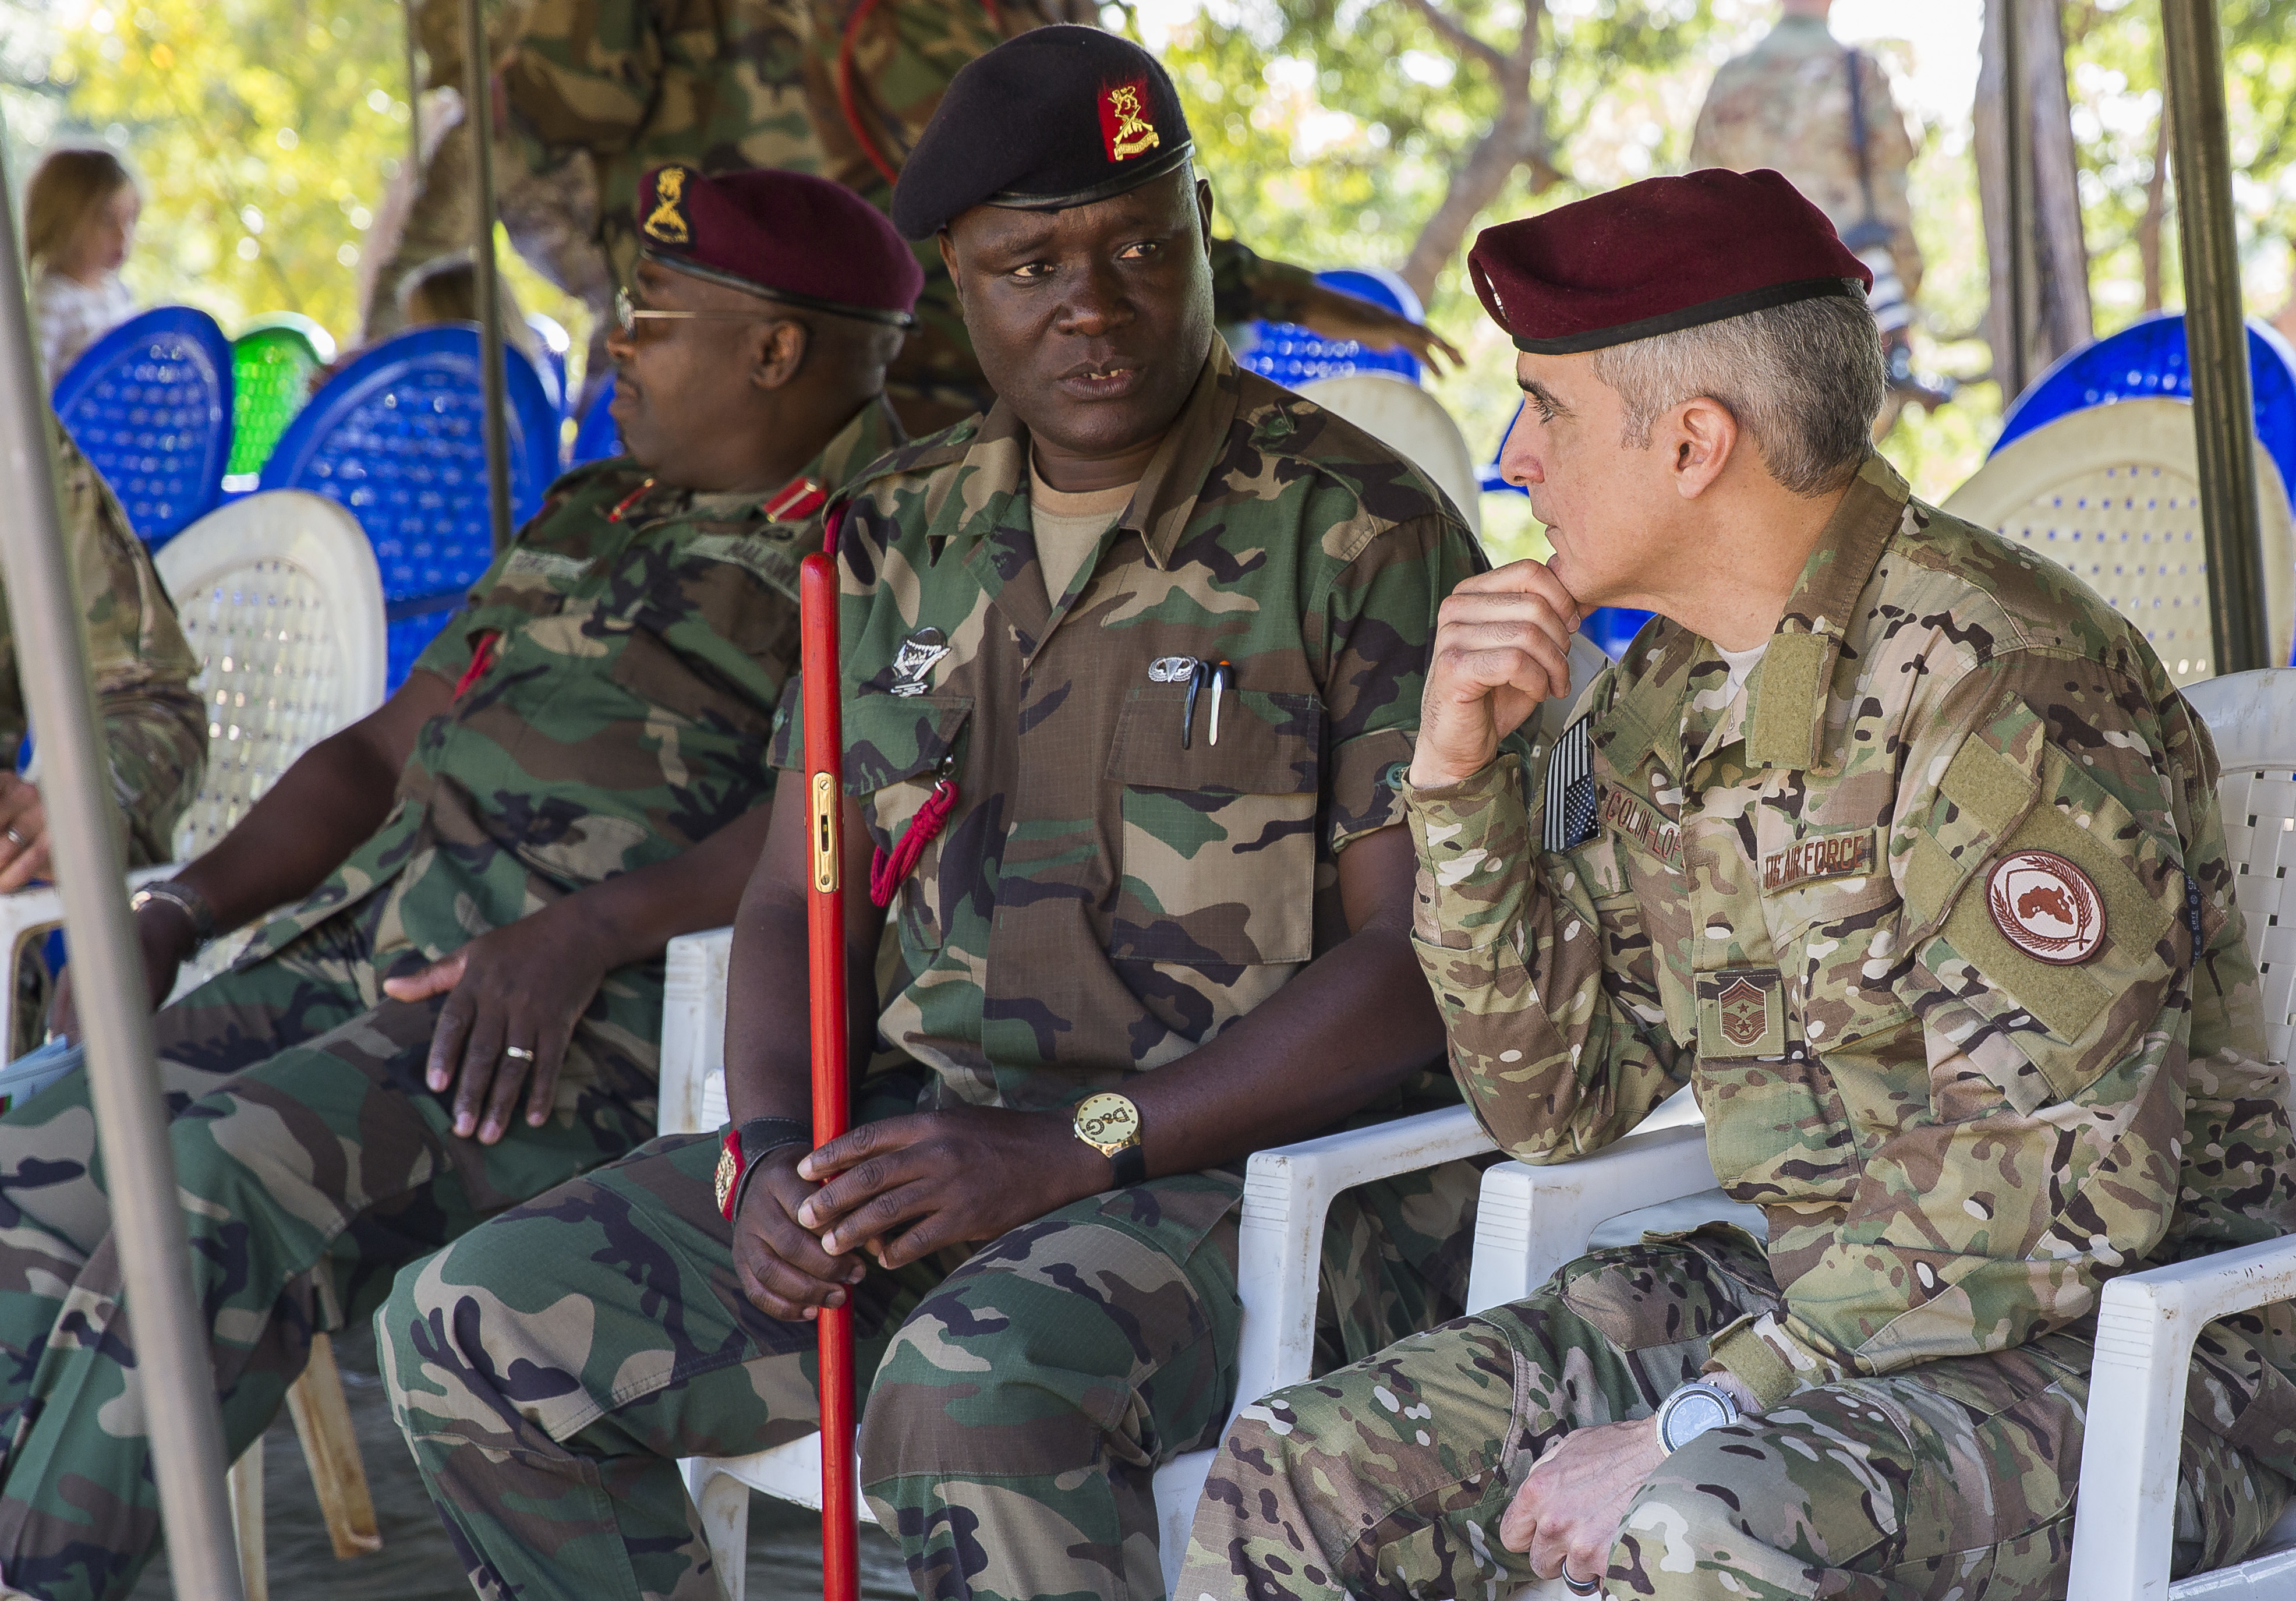 U.S. Africa Command Senior Enlisted Leader Command Chief Master Sgt. Ramon Colon-Lopez meets and discusses with key Malawi Defence Force leadership at the Malawi Battalion Training Site, May 31, 2018. Leadership sat together and witnessed the final MALBAT exercise and graduation ceremony as dozens of MDF soldiers prepare for deployment. Colon-Lopez travelled to Malawi to meet with the Malawi Defence Force, engaging with both senior officer and enlisted leadership as part of a three-day tour. The visit included a follow-up on issues addressed by the MDF during the Africa Senior Enlisted Leader Conference in November 2017, as well as assess the MDF's capability to train and sustain Peace Keeping Operations Forces.